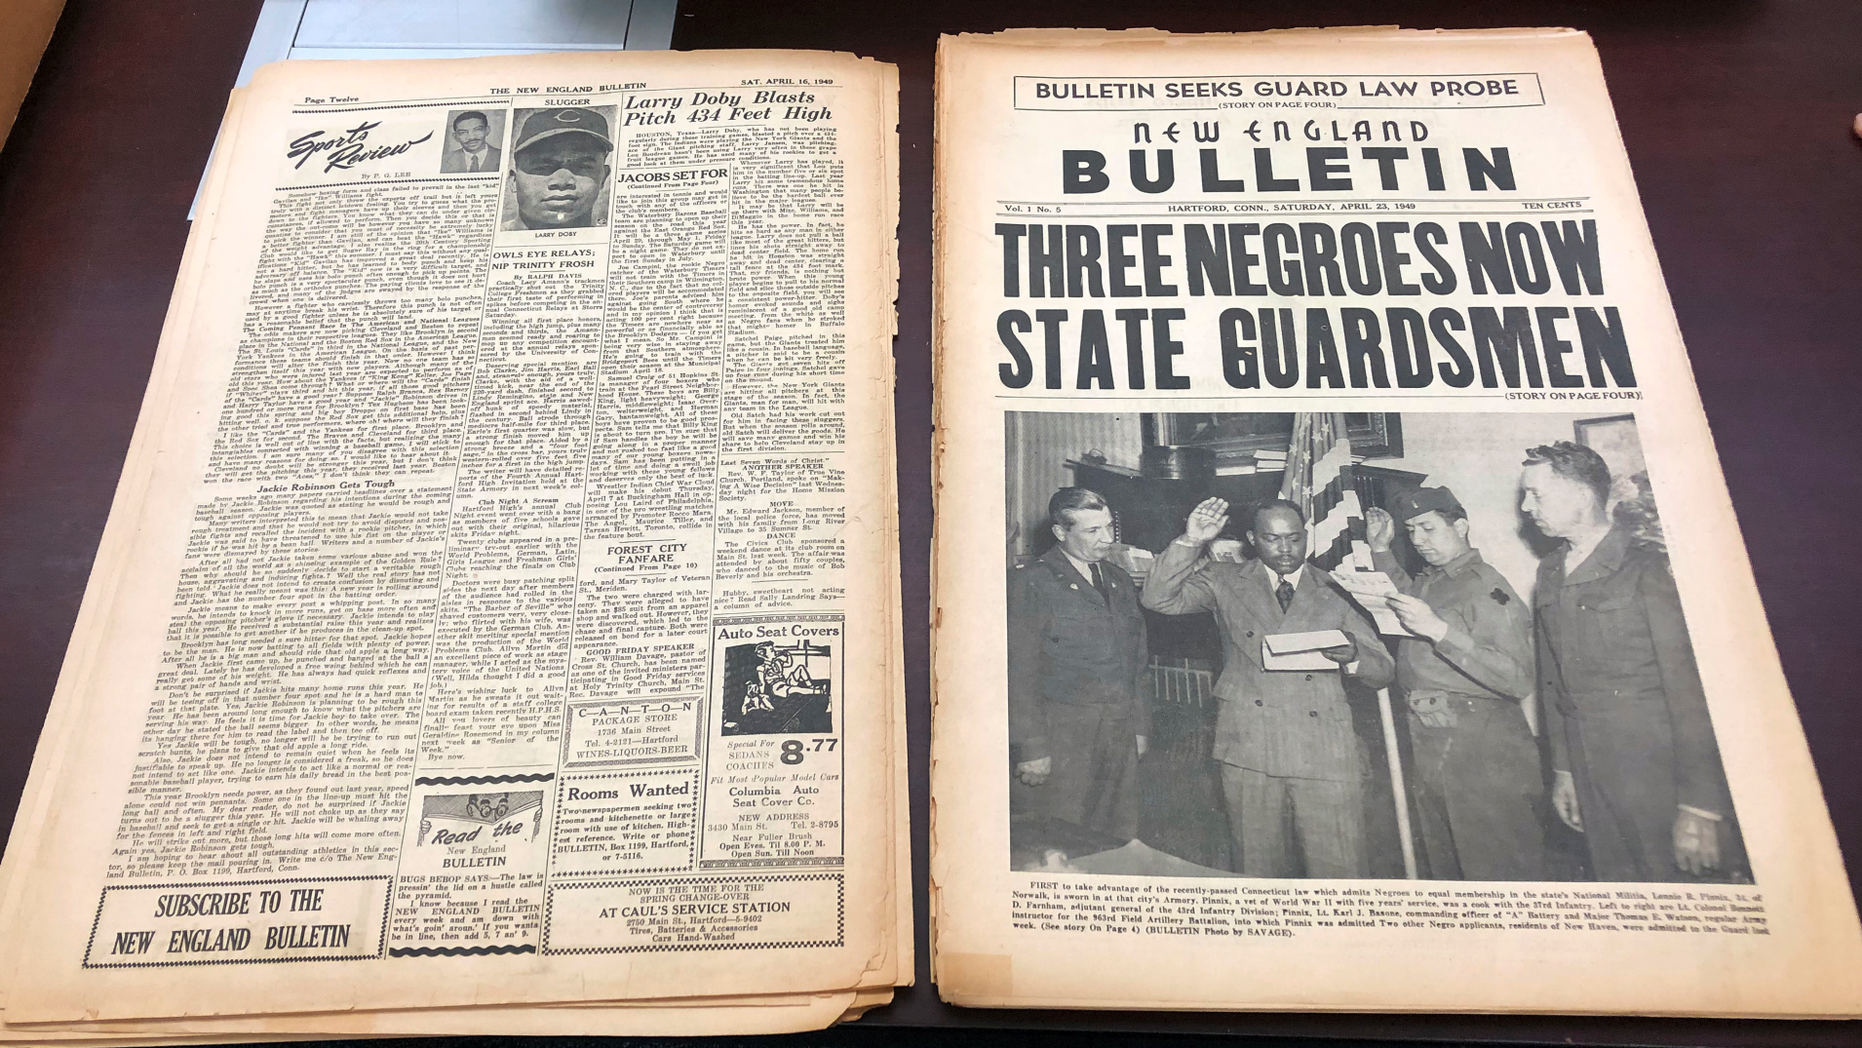 This Nov. 29, 2018 photo shows an original April 23, 1949 copy of the New England Bulletin, a black-owned and operated weekly newspaper in Hartford, Conn. Old microfilm of this and other incarnations of the newspaper are being digitized so they can be available online as part of the United States Newspaper Program. This issue highlights the first person to take advantage of a Connecticut law that granted blacks equal membership to the Connecticut National Guard. (AP Photo/Susan Haigh)